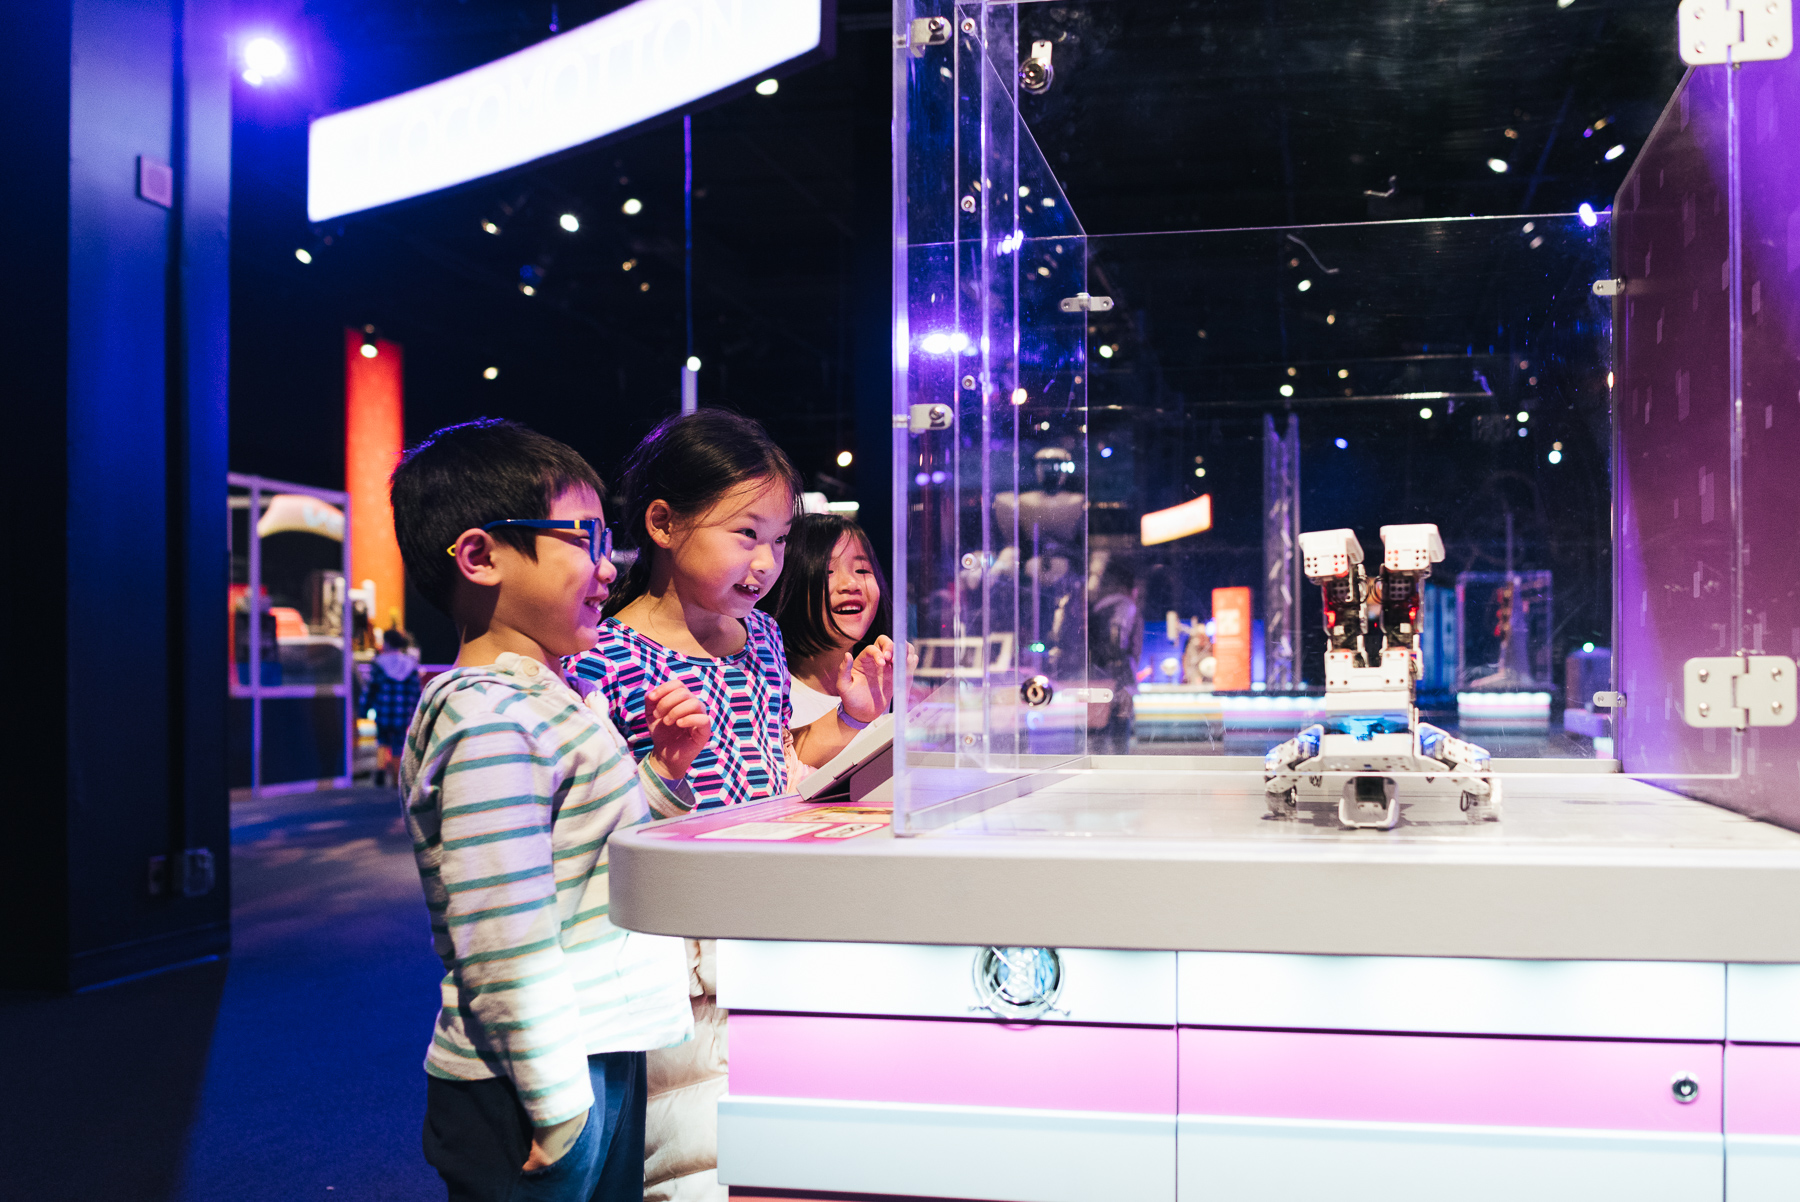 kids playing with robot in science museum